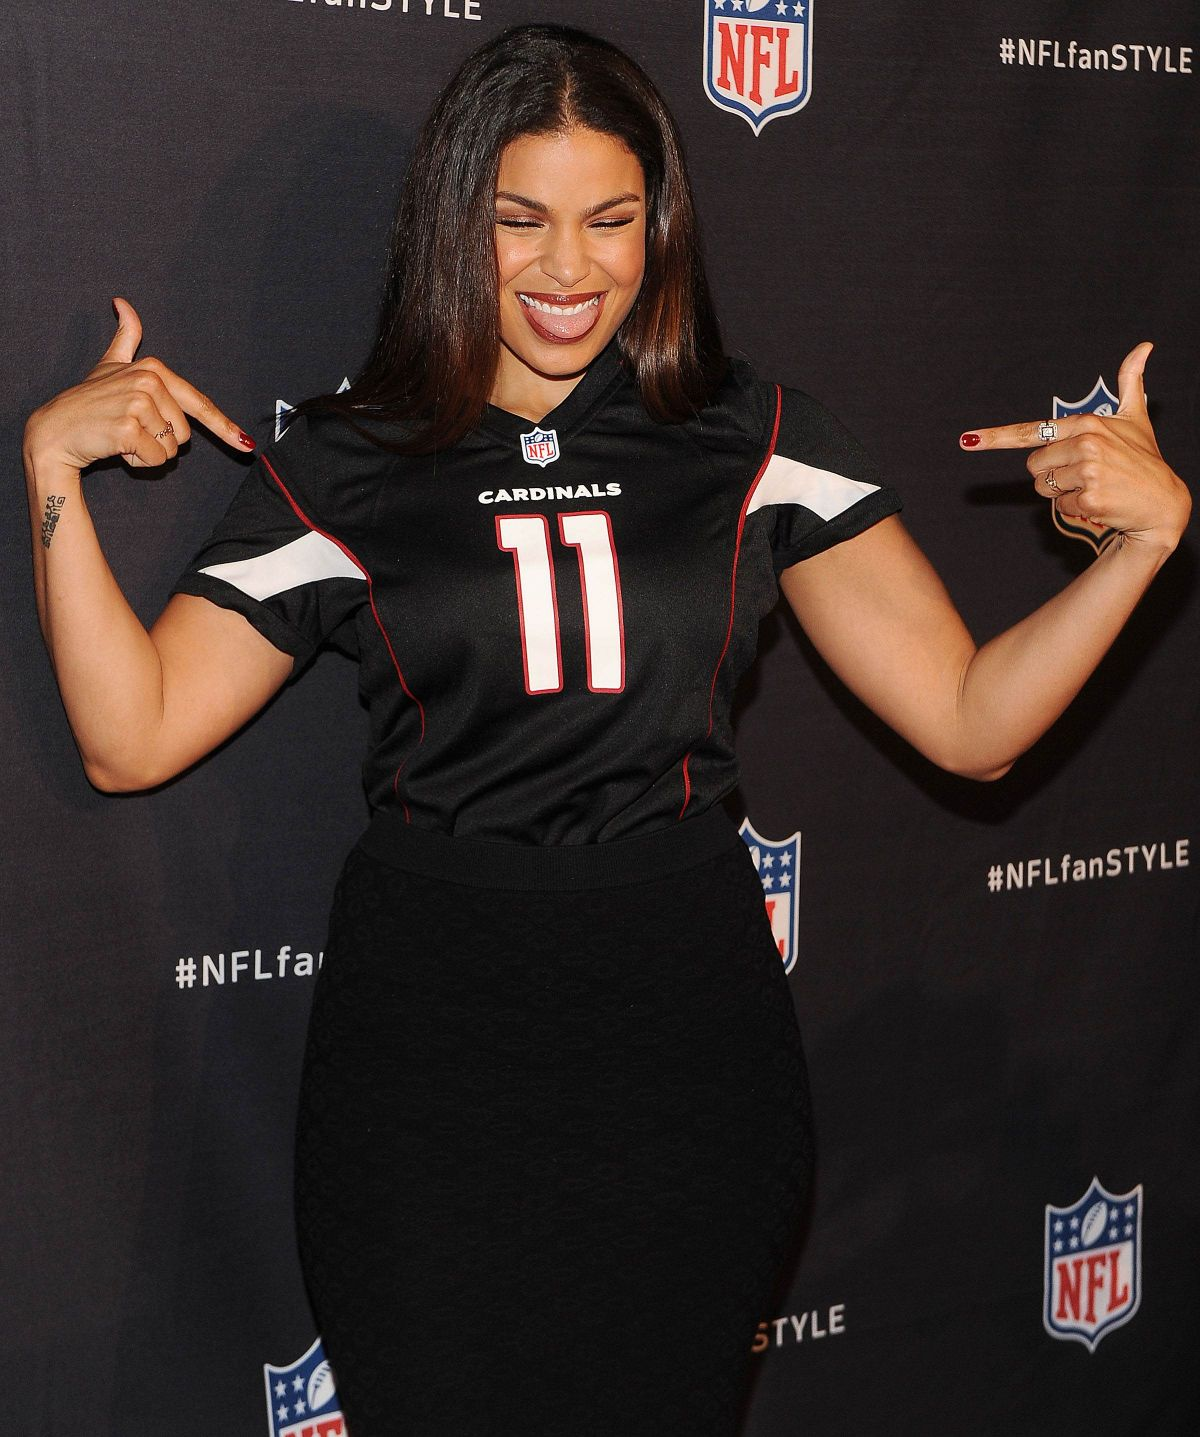 JORDIN SPARKS at NFL Inaugural Hall of Fashion Launch in New York